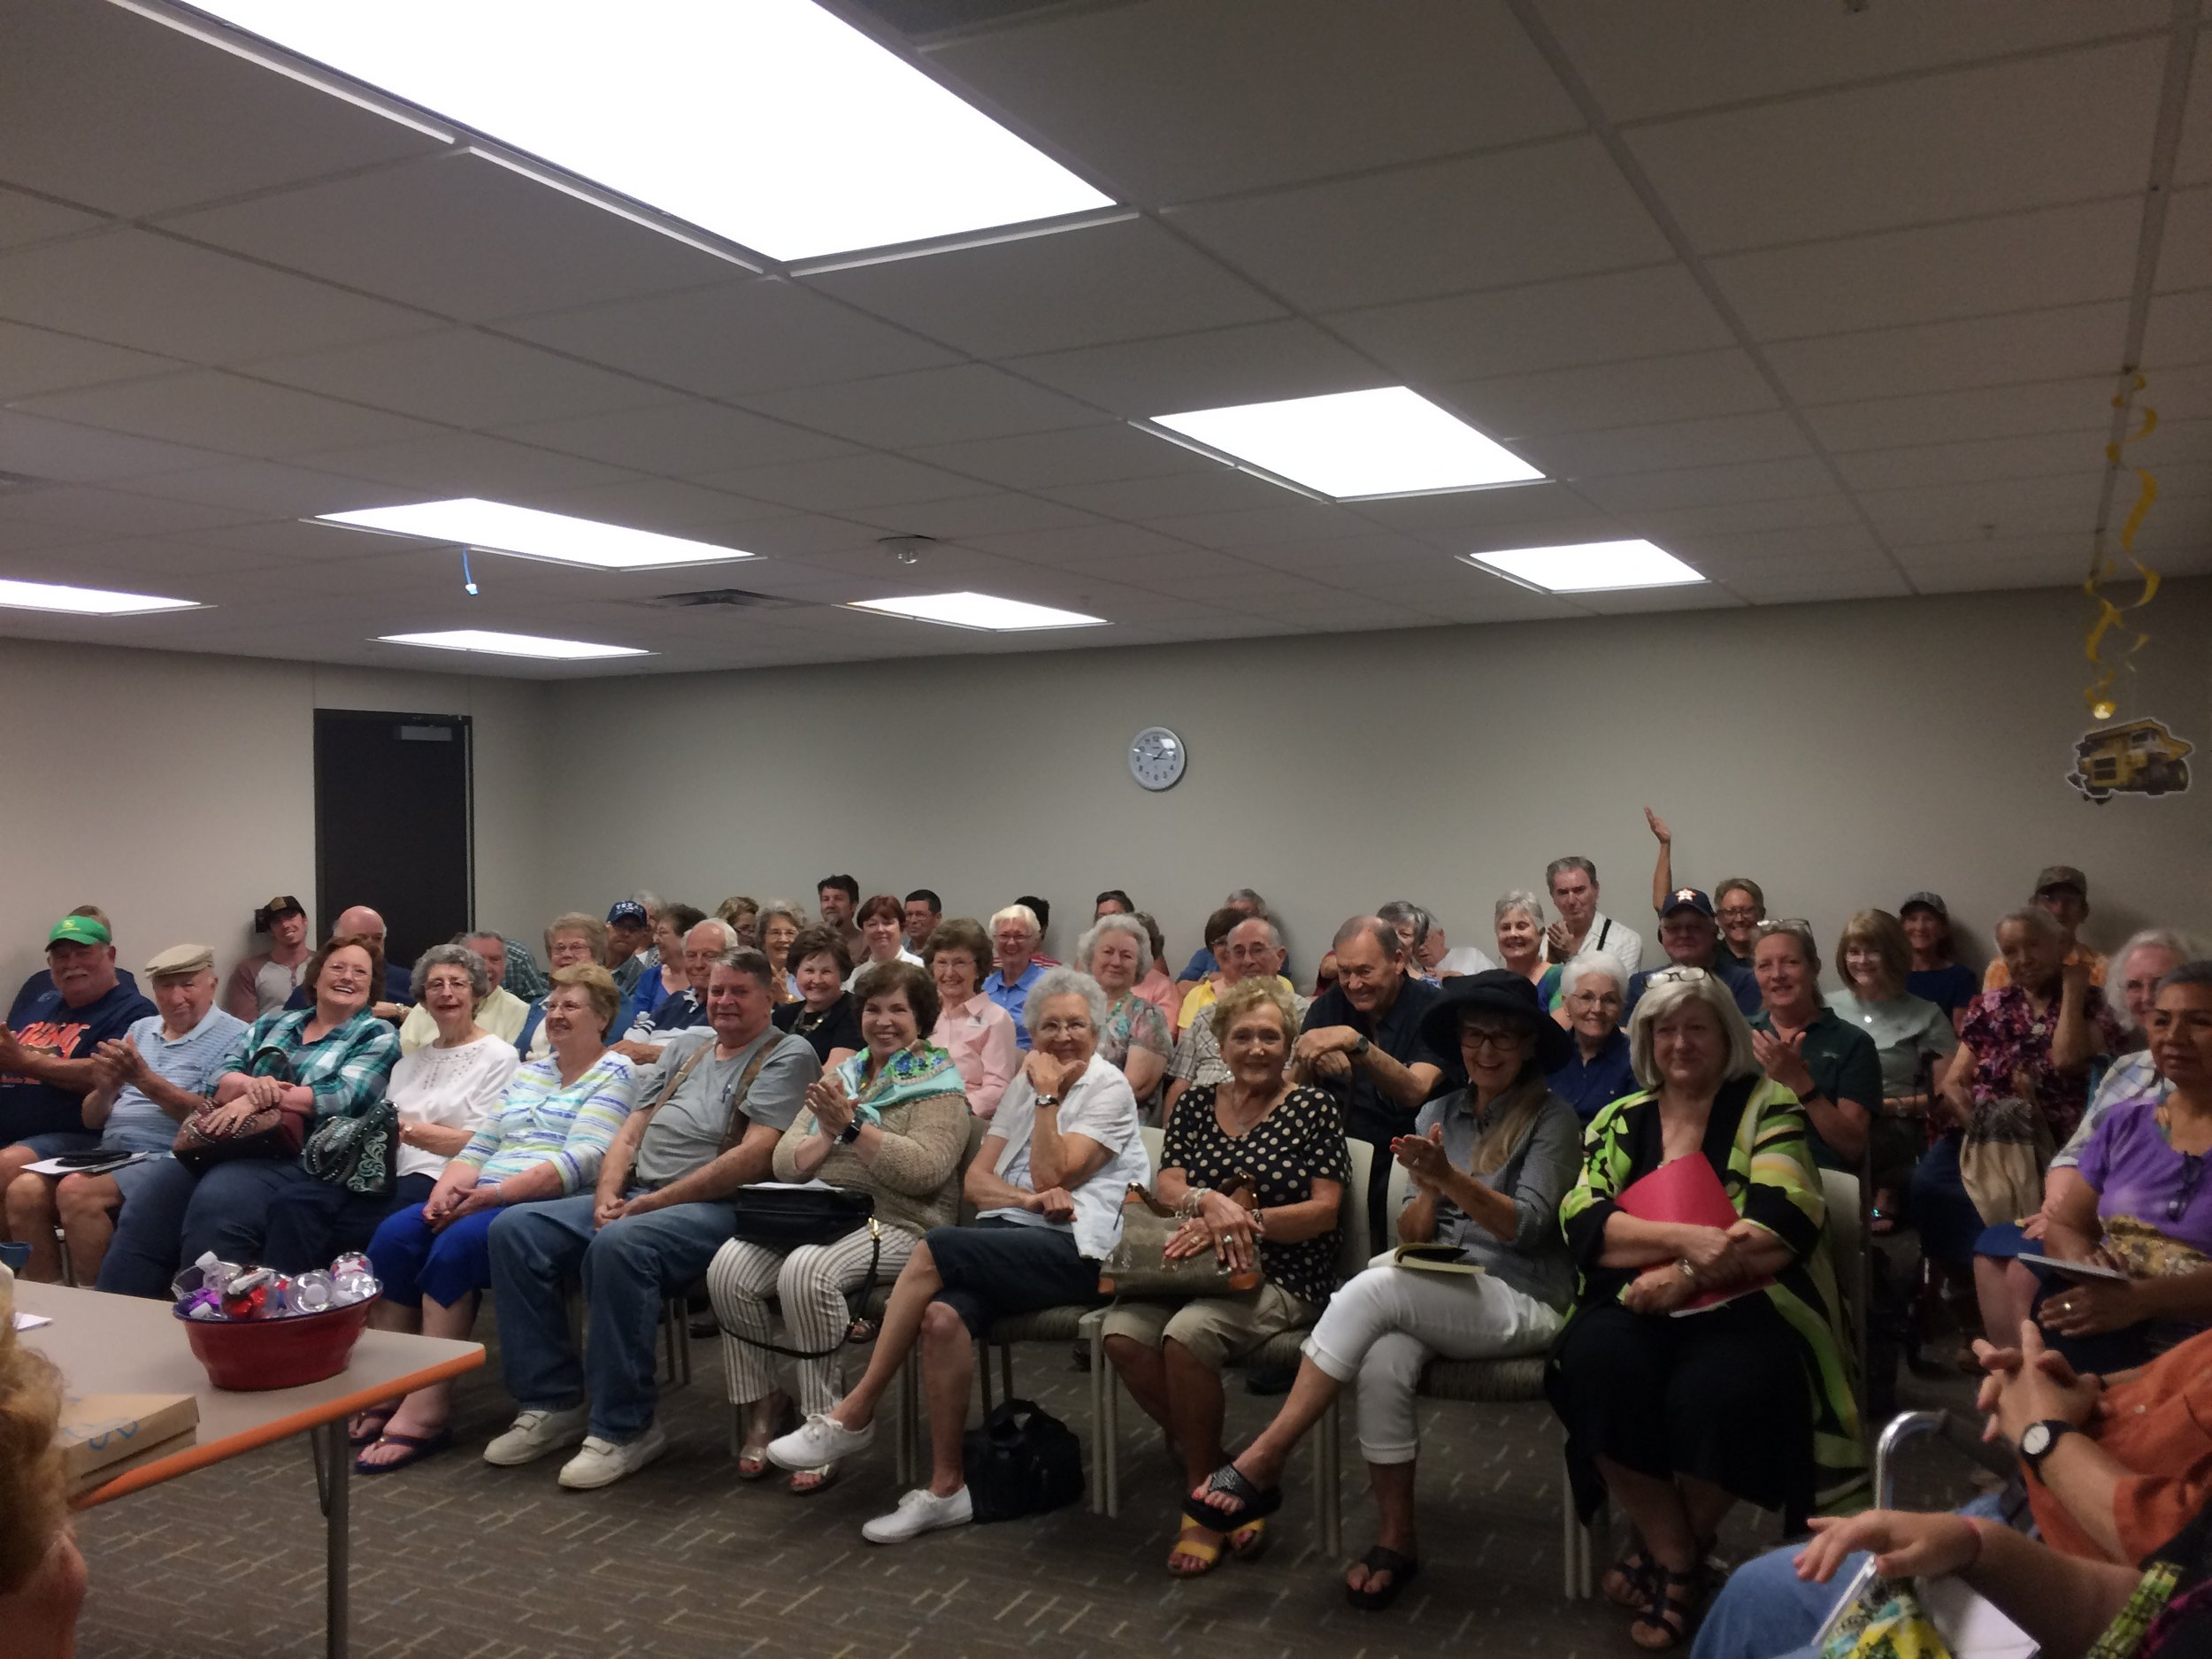 Enthusiastic audience at Livingston Public Library for my presentation on Trinity River History, summer 2017.